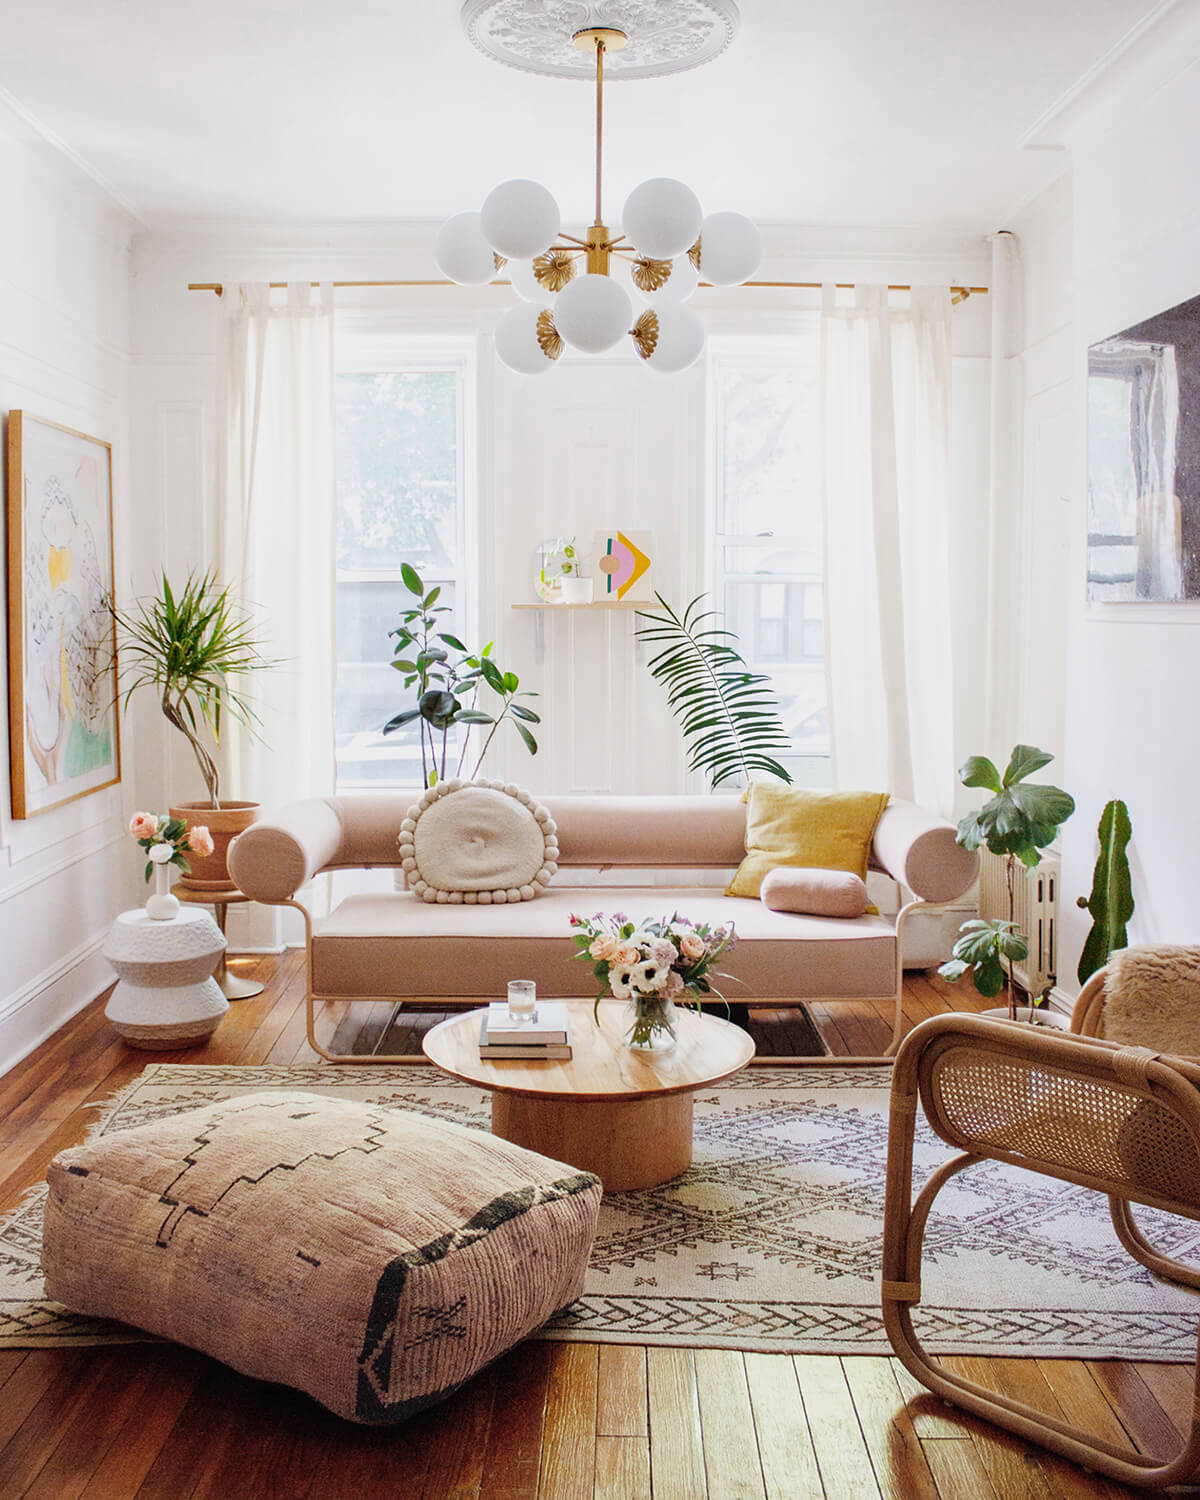 20 Best Small Apartment Living Room Decor and Design Ideas ... on Small Living Room Ideas  id=82080